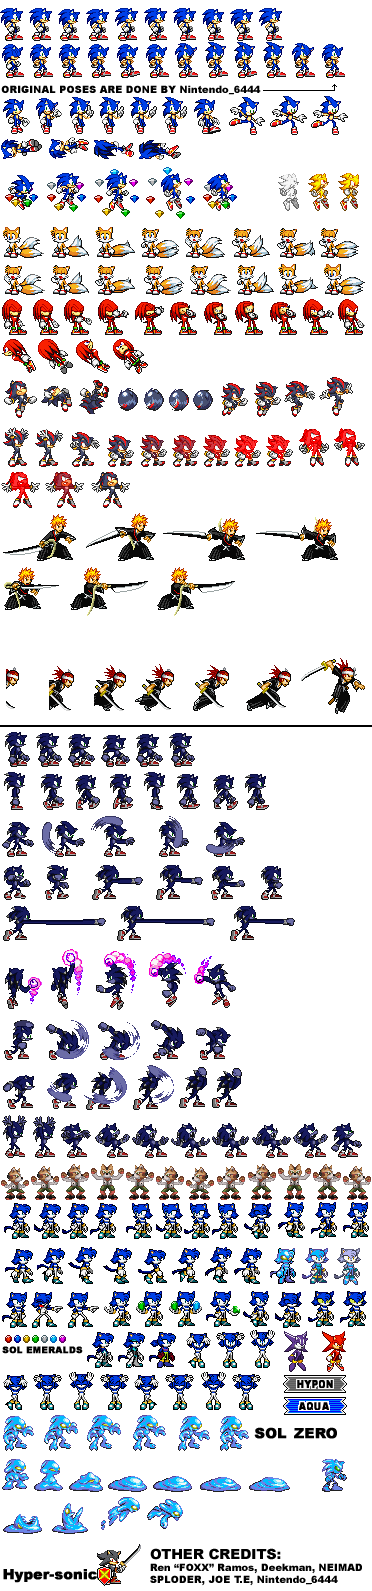 Sprite Sheet Pack by LucarioShirona